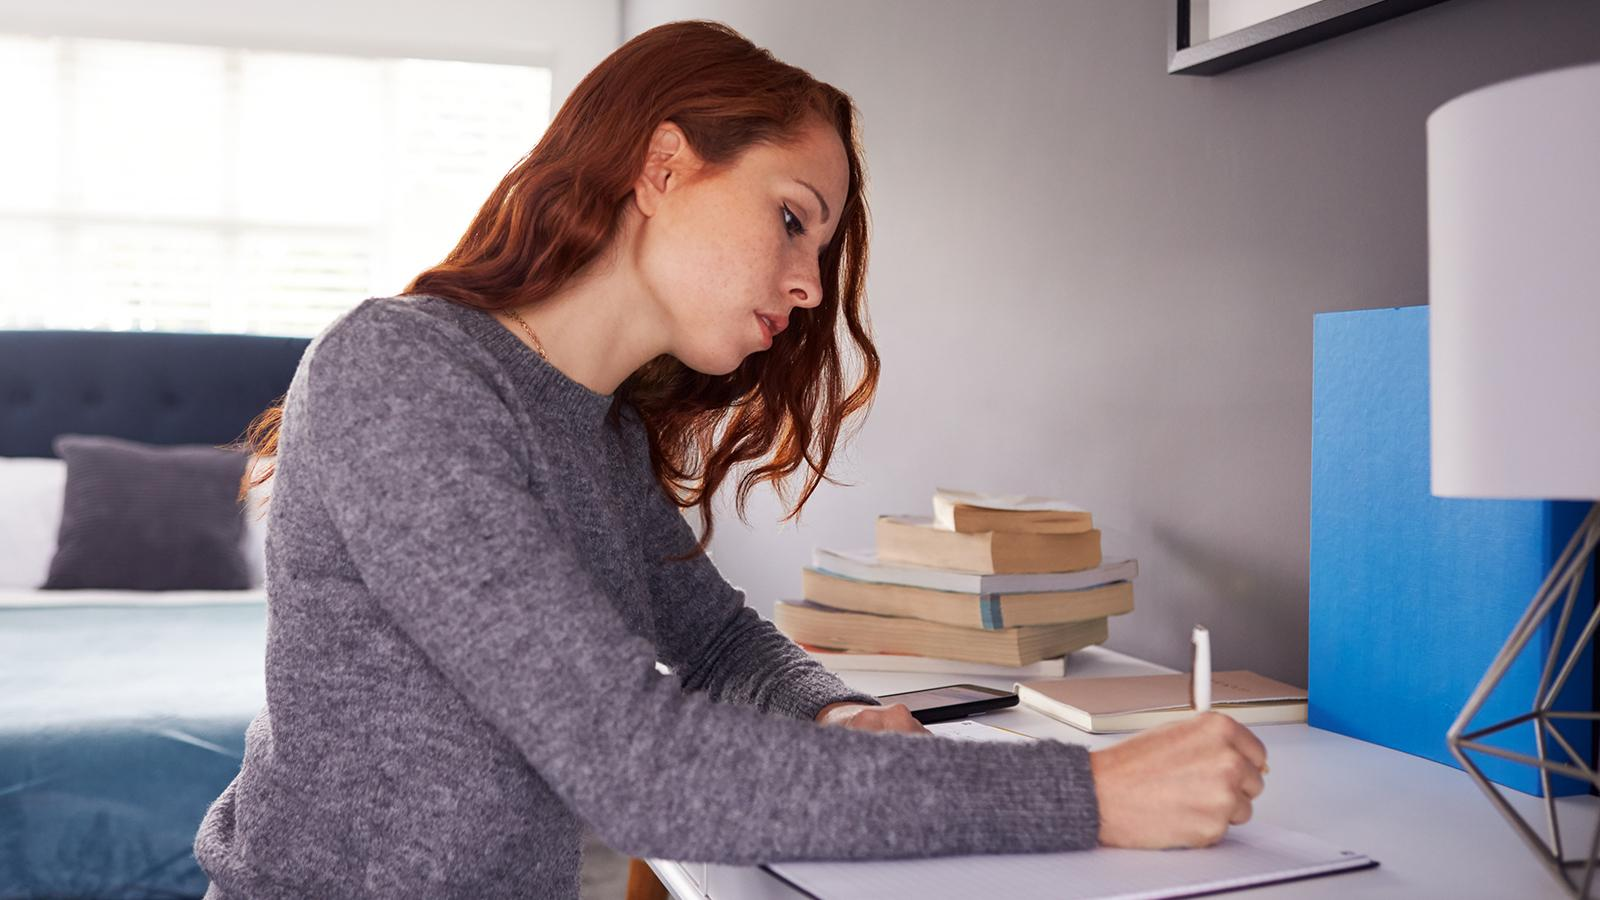 female college student working on a paper